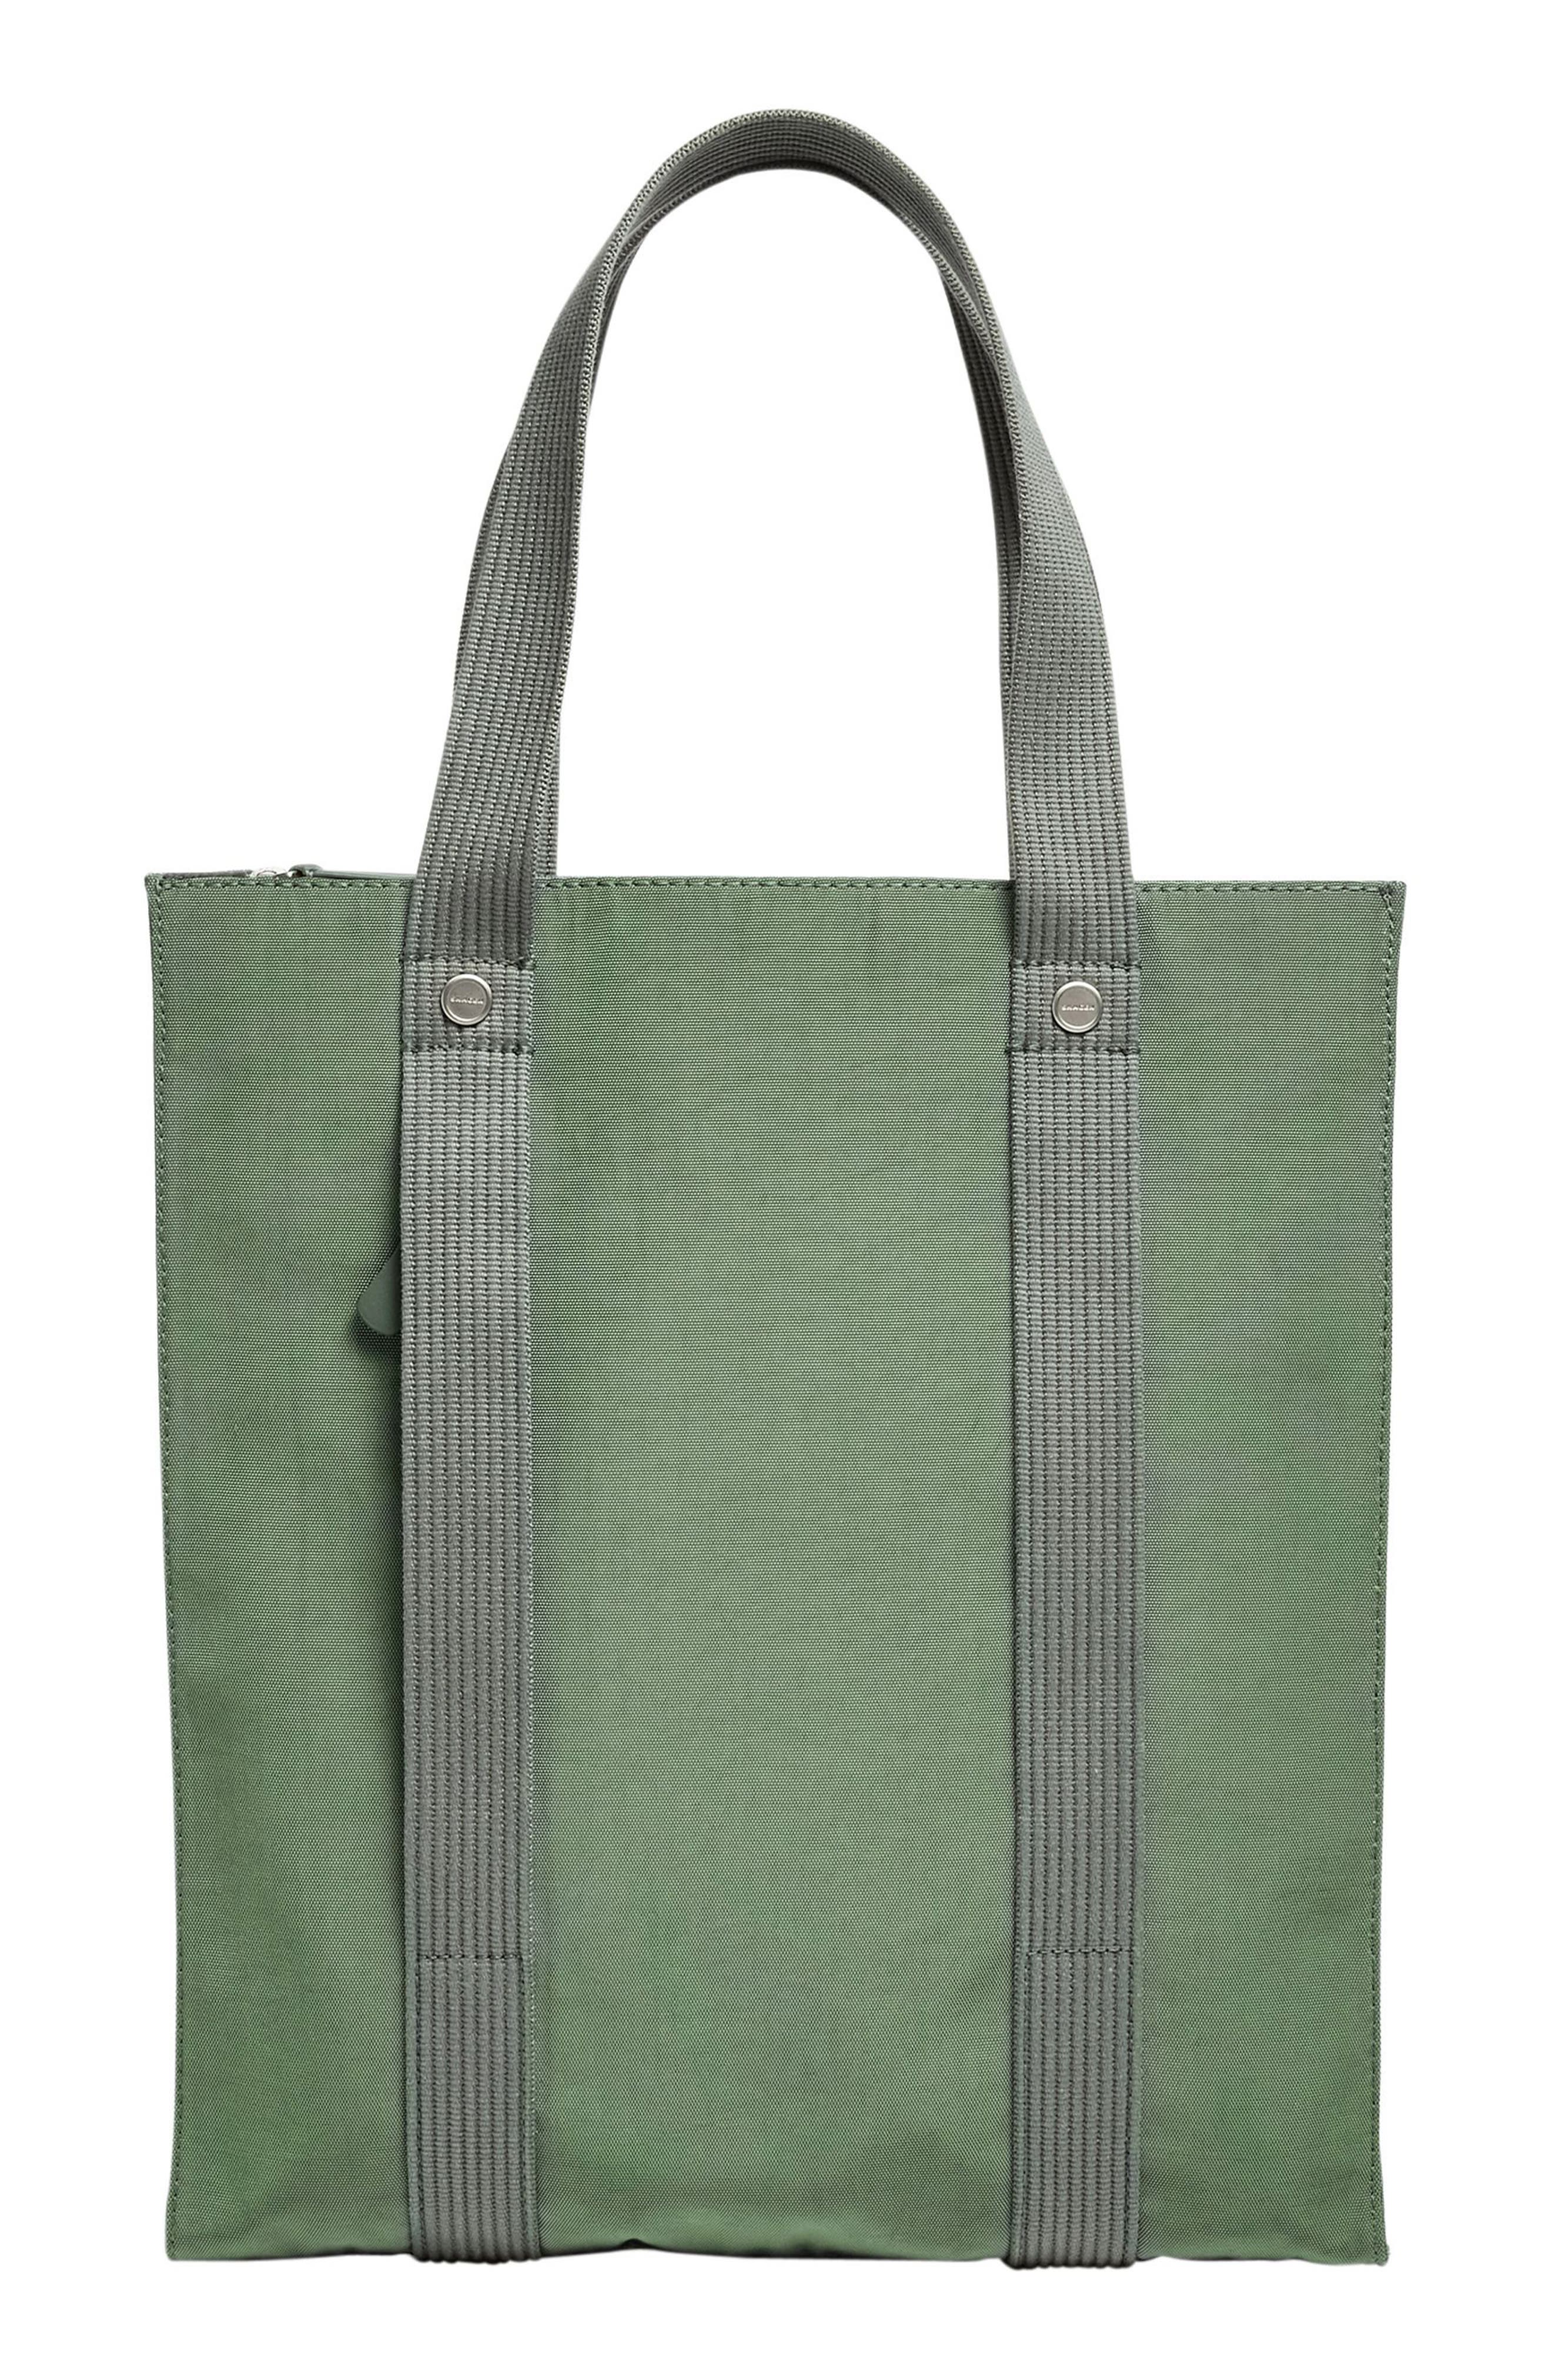 Thomsen Travel Tote Bag,                             Main thumbnail 1, color,                             Agave